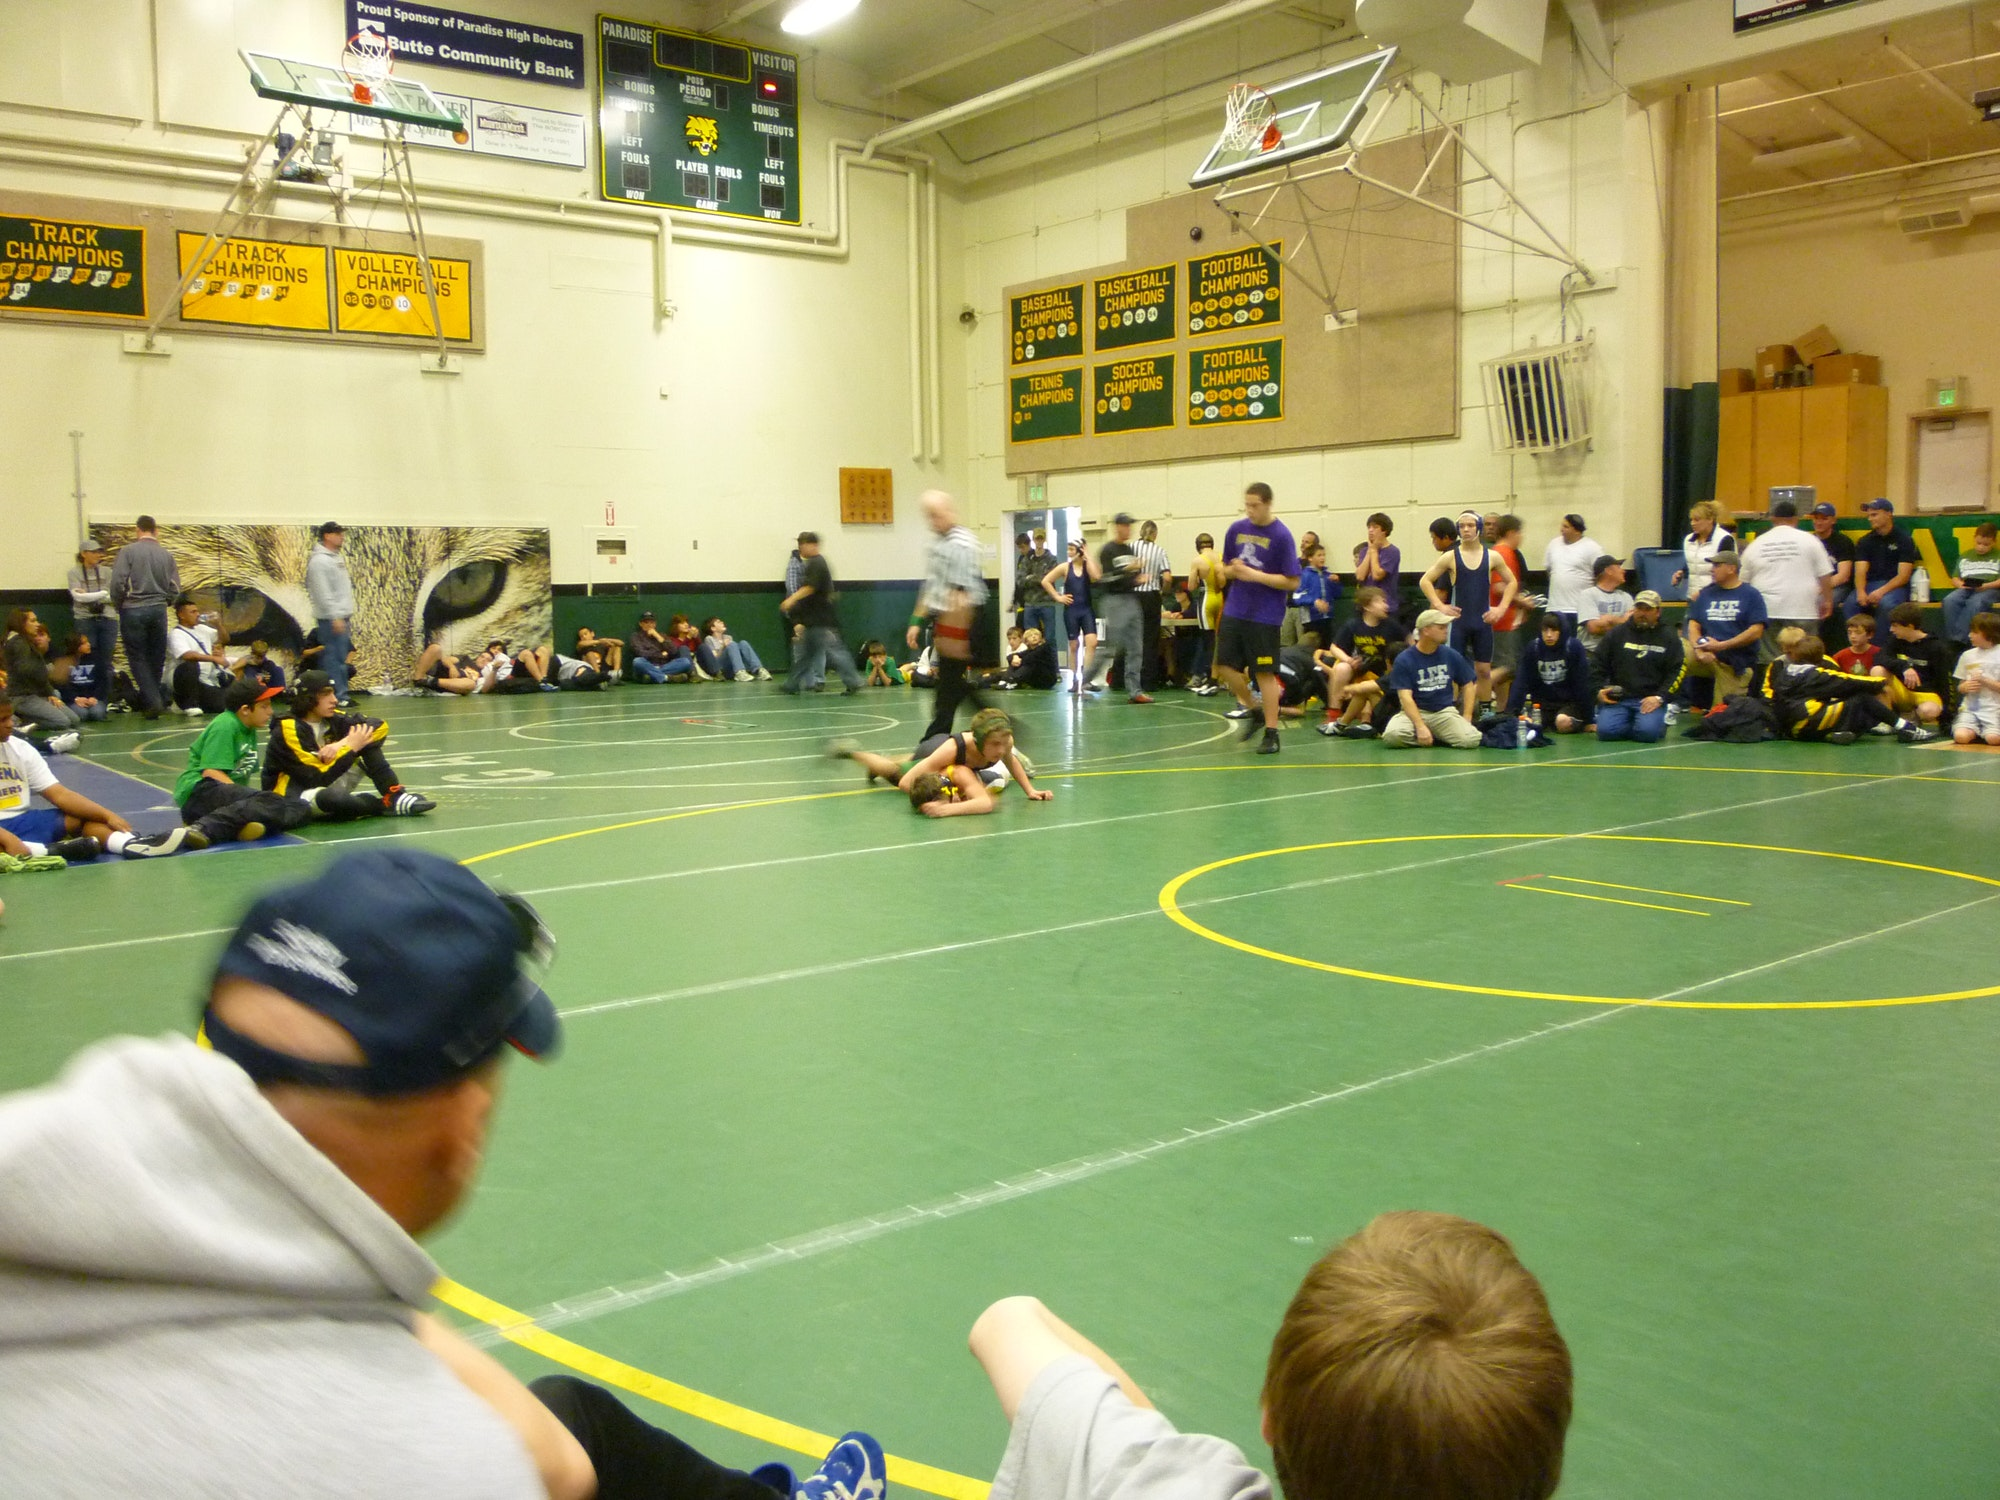 Adults and children watching a wresting match between two youth